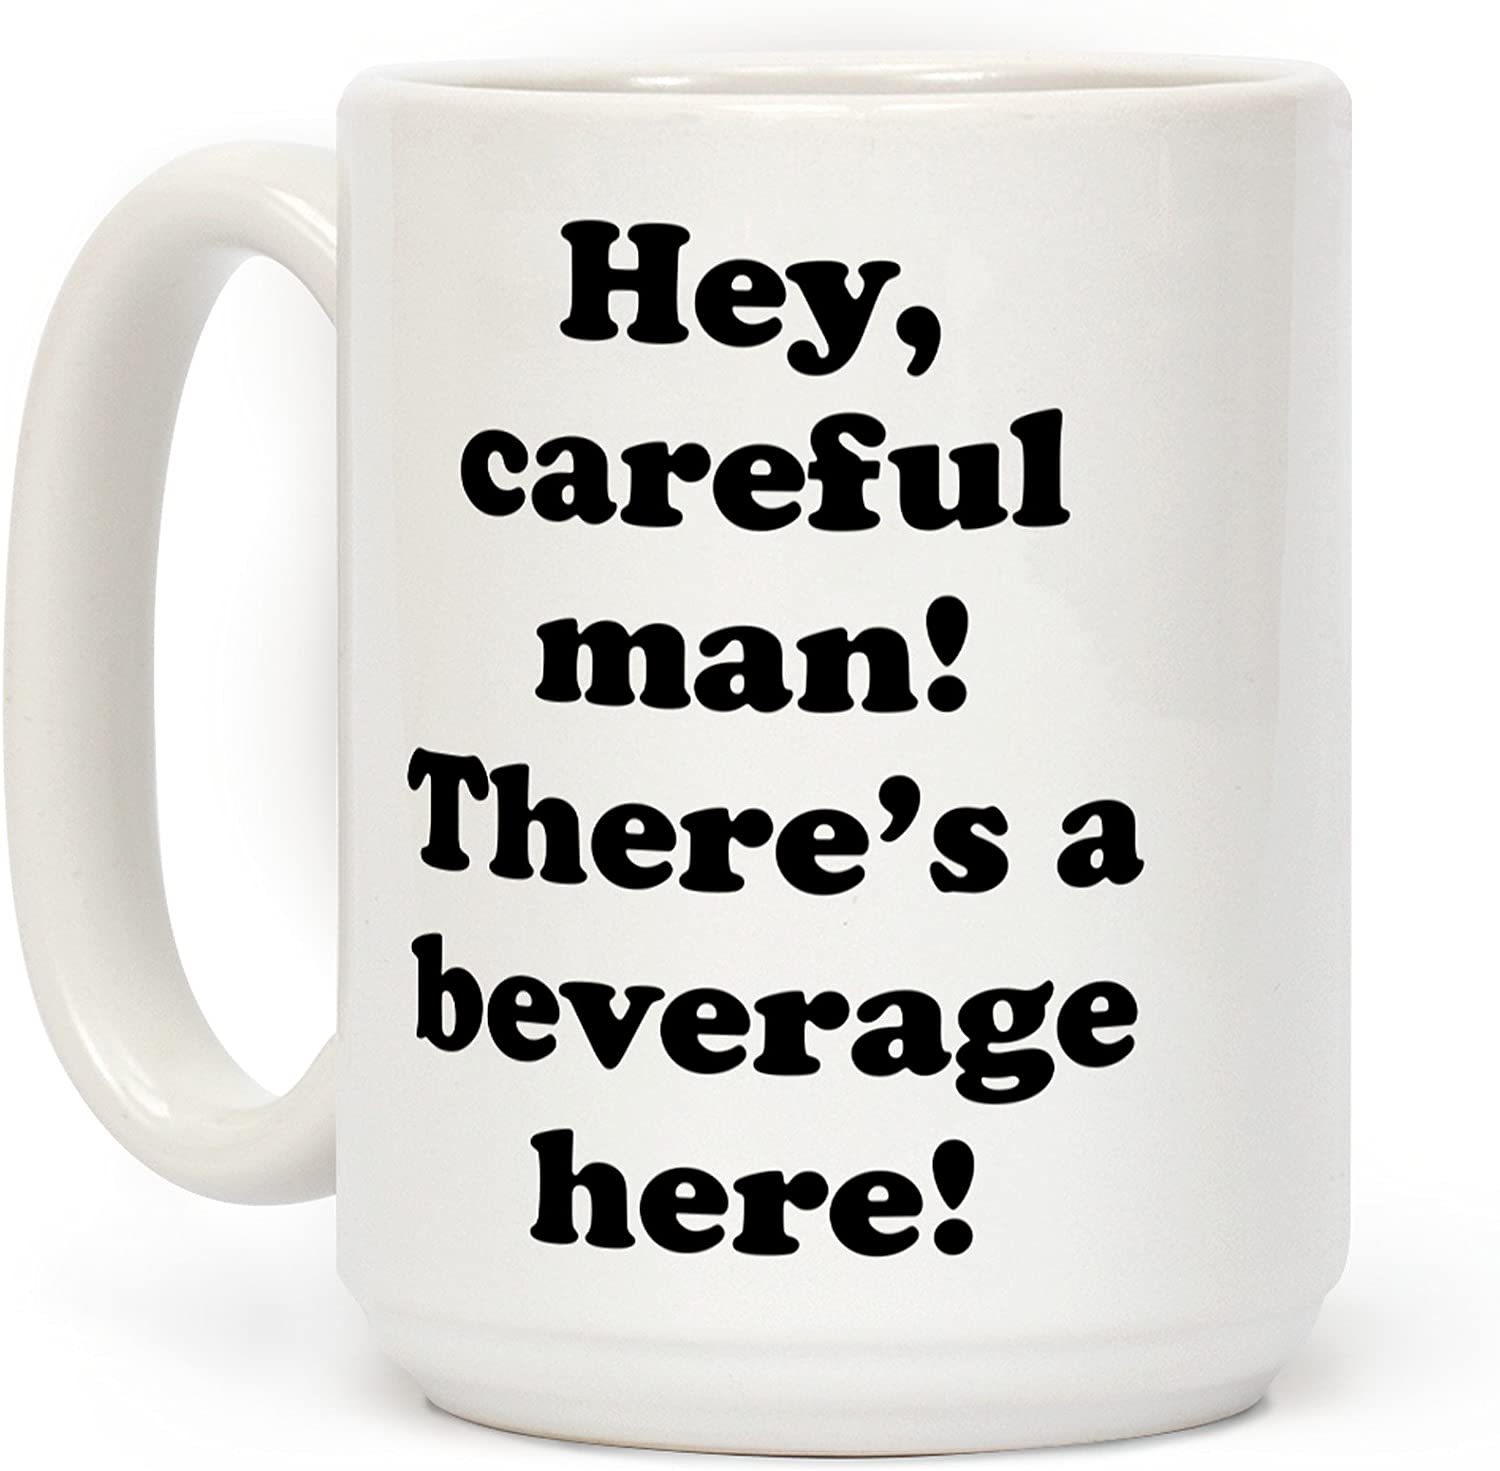 LookHUMAN Hey Careful Man There's A Beverage Here! White 15 Ounce Ceramic Coffee Mug